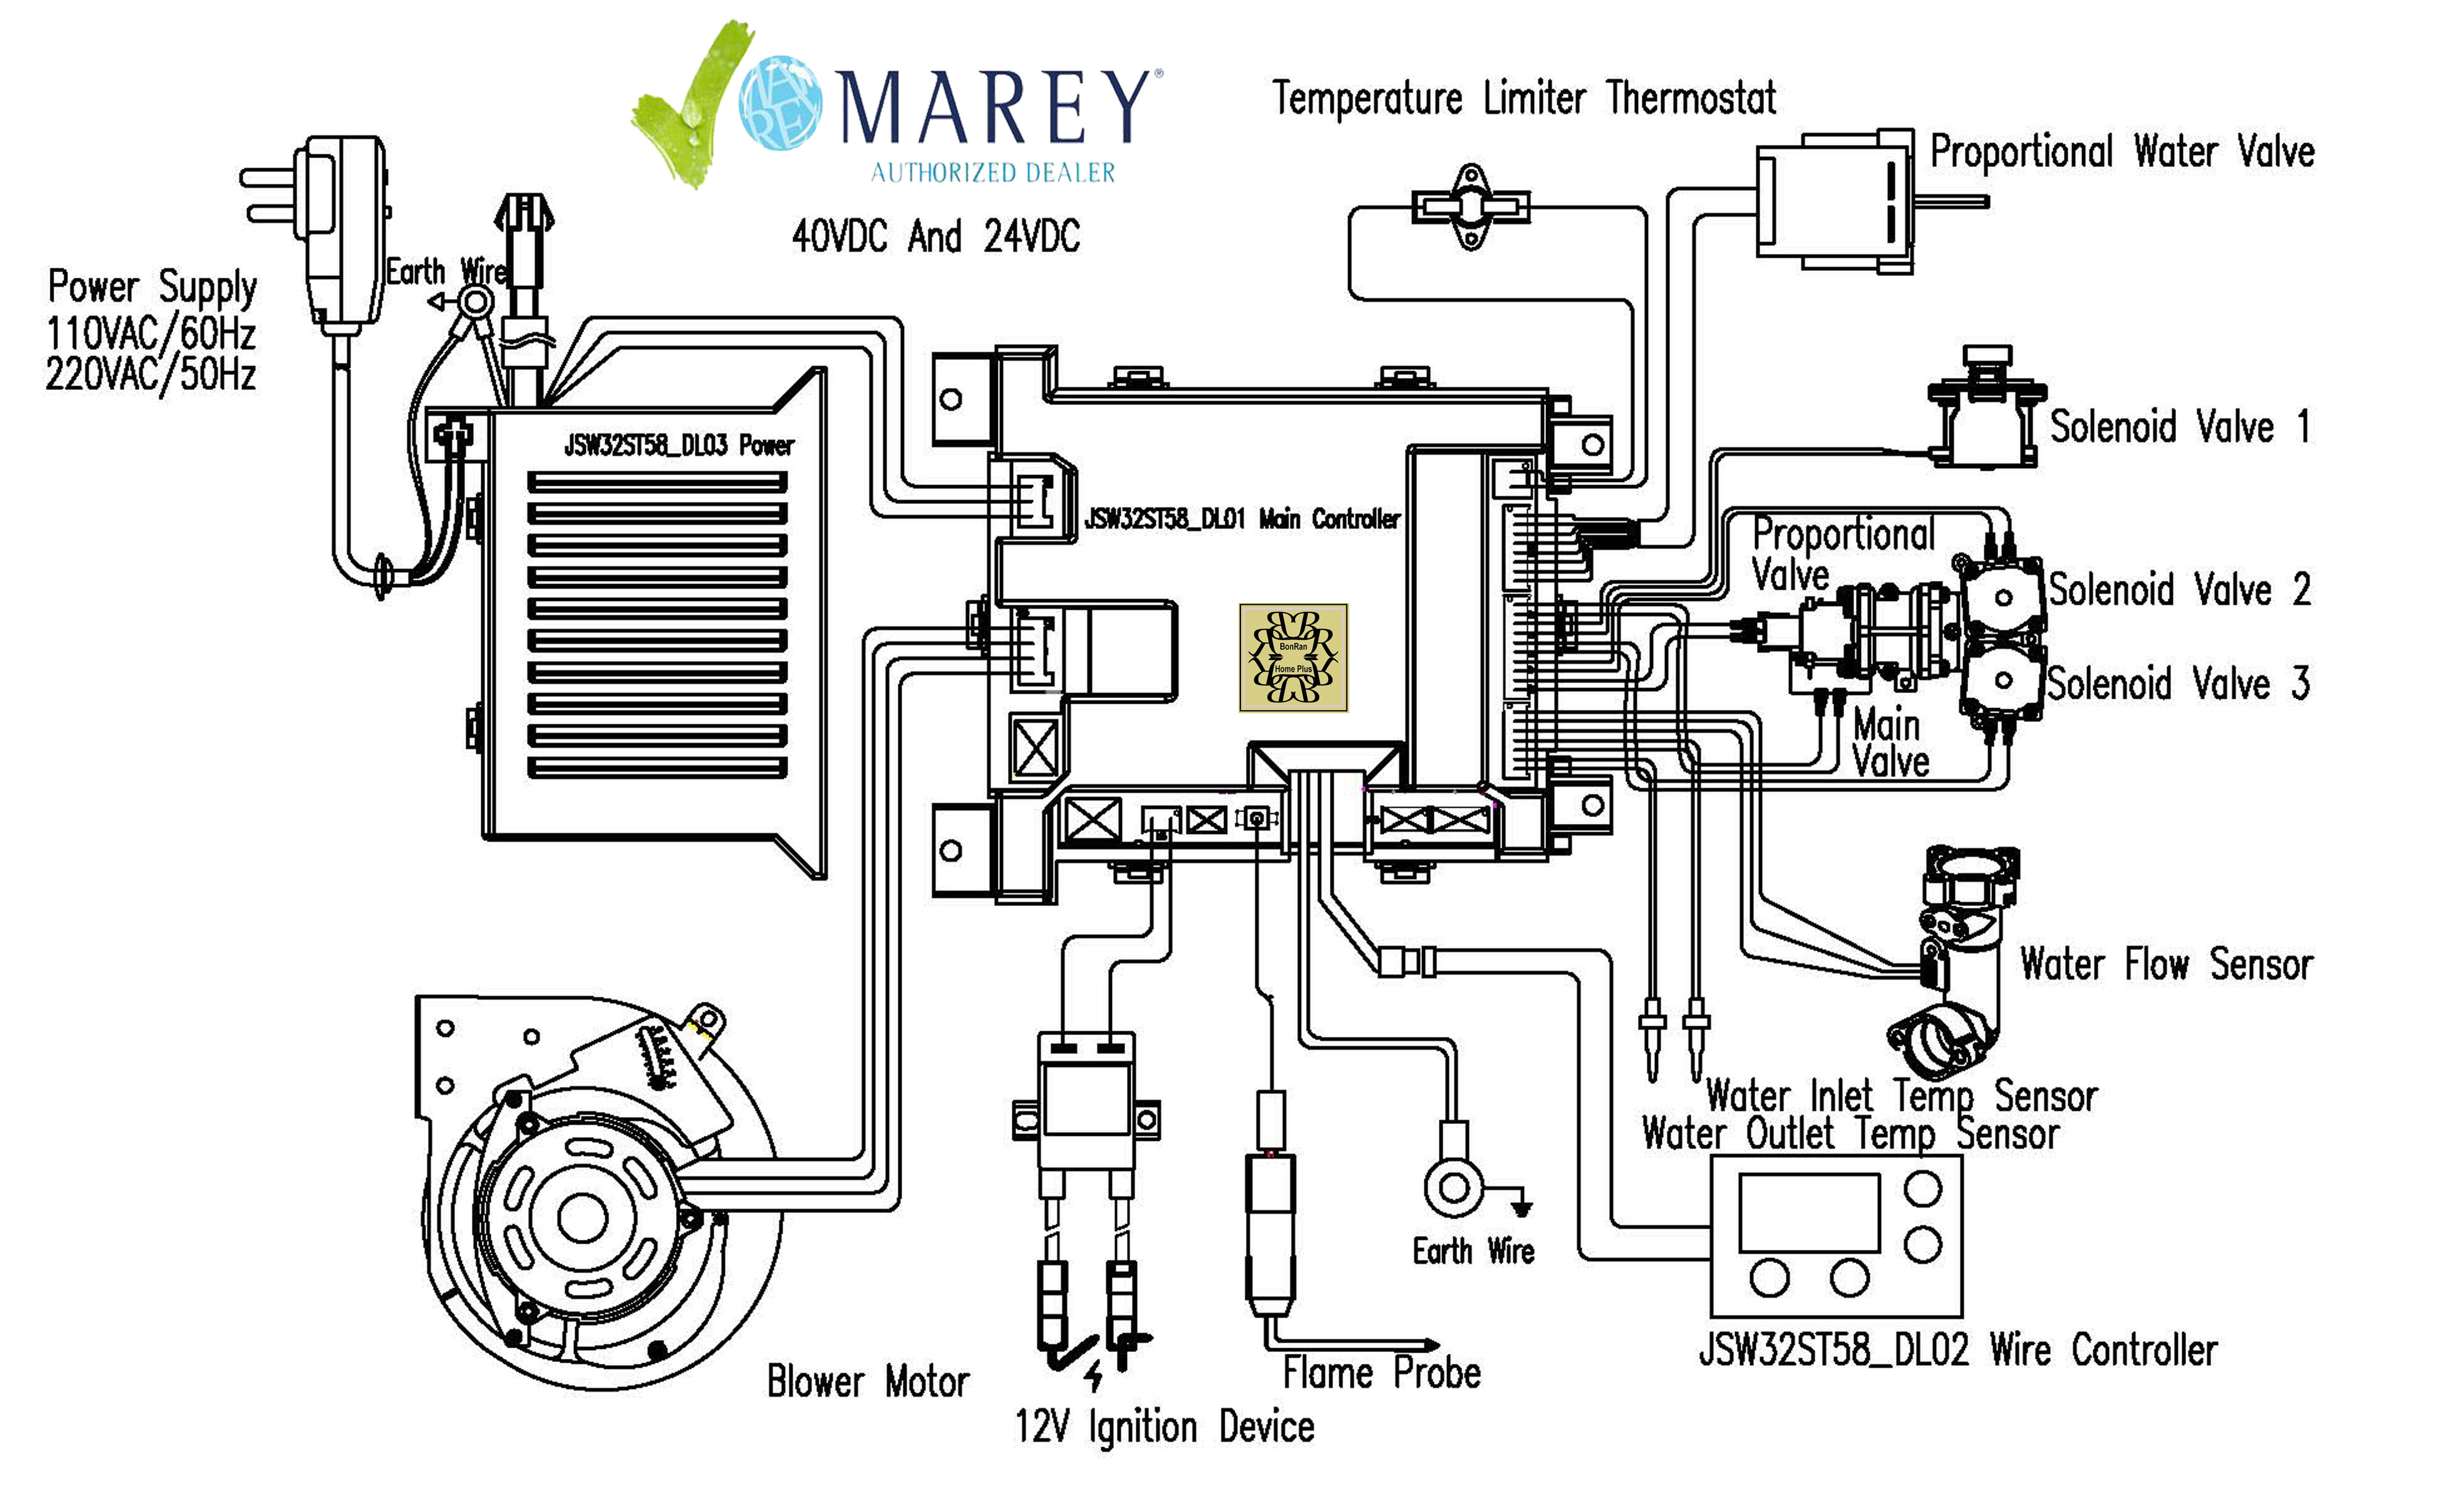 Marey Refurbished REFGA26ONG 7 GPM Natural Gas Outdoor Tankless